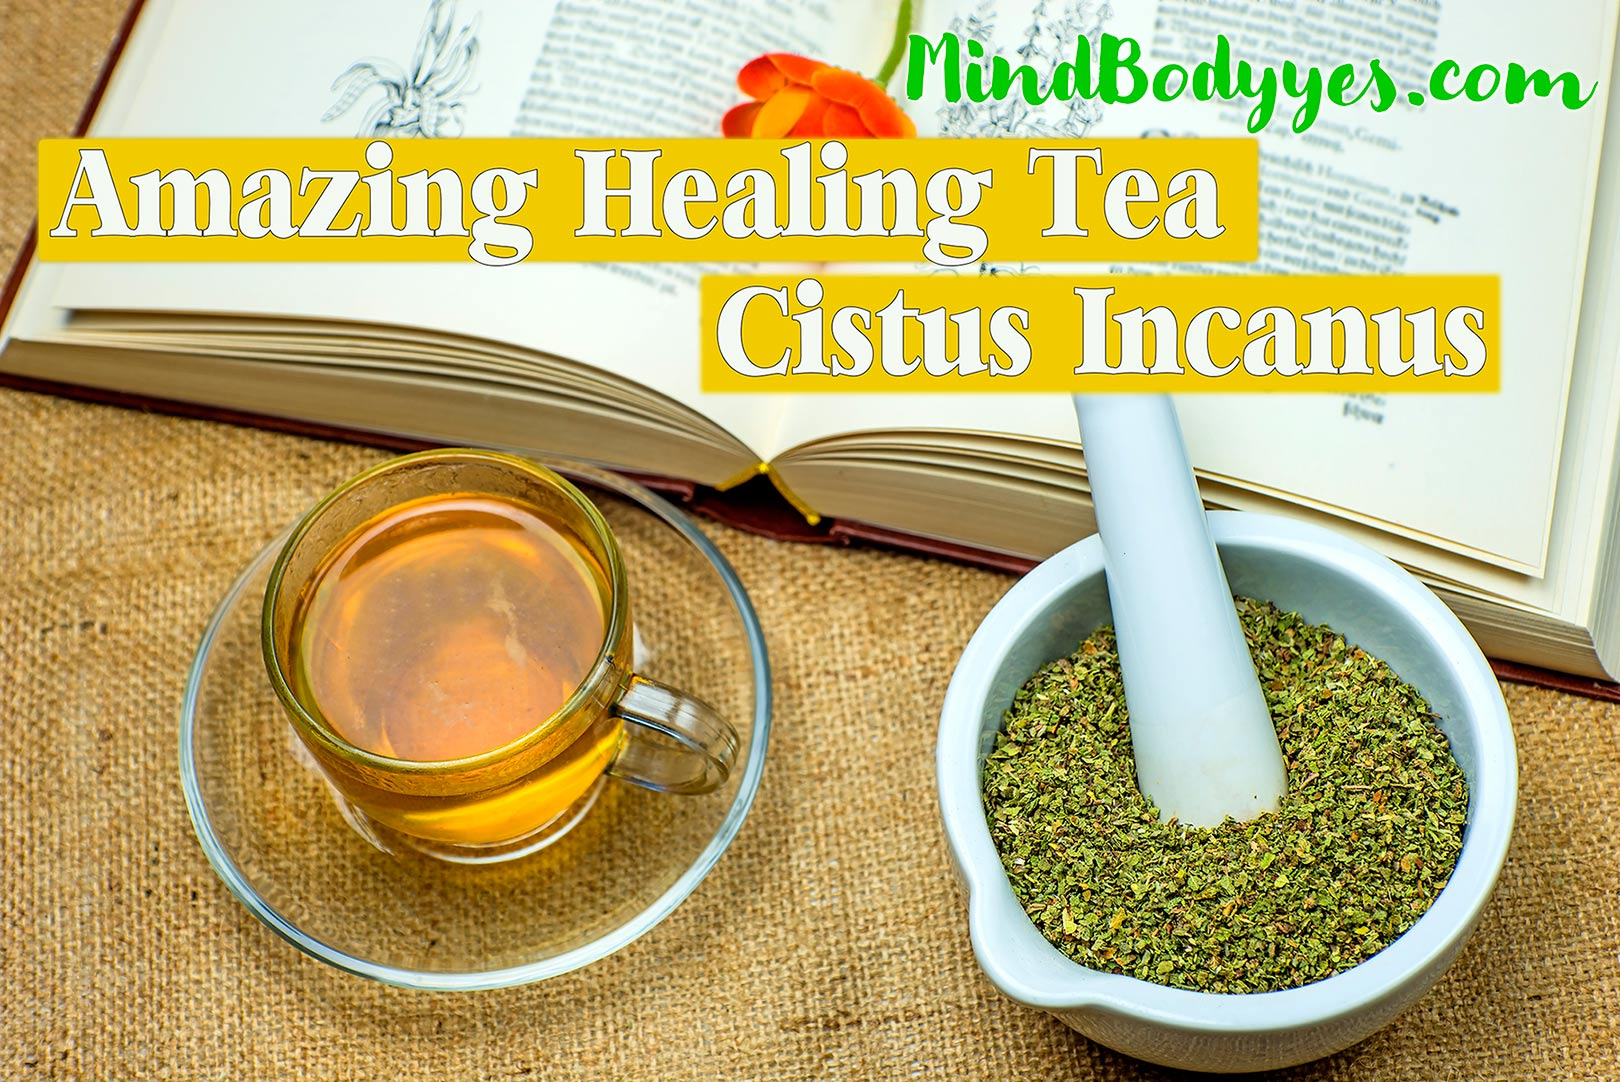 What's Your Cup Of Tea 5 Miracle Teas for Fat Loss pics